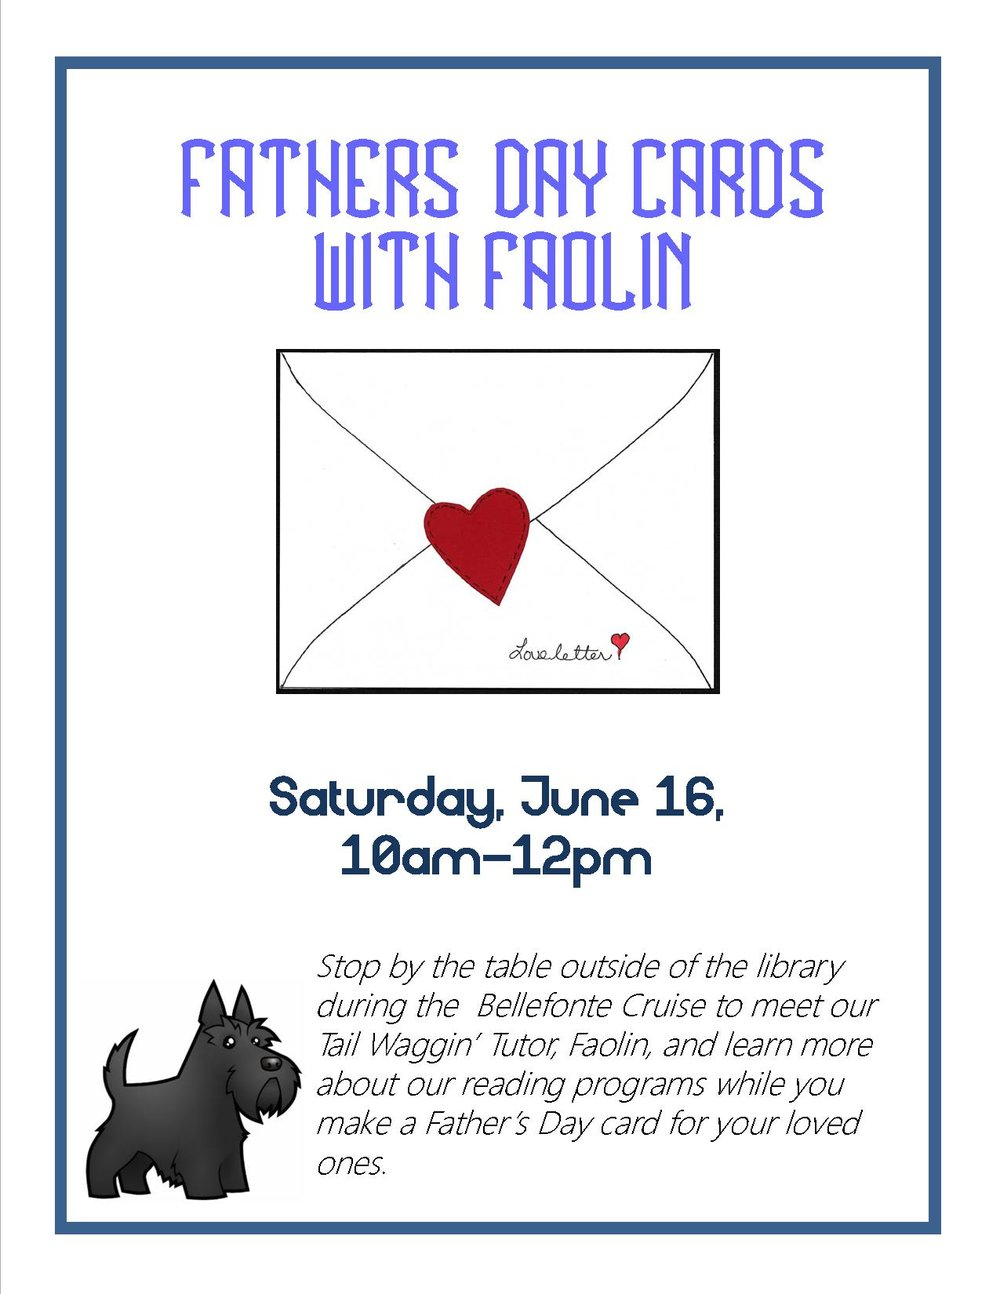 Fathers Day Cards with Faolin.jpg